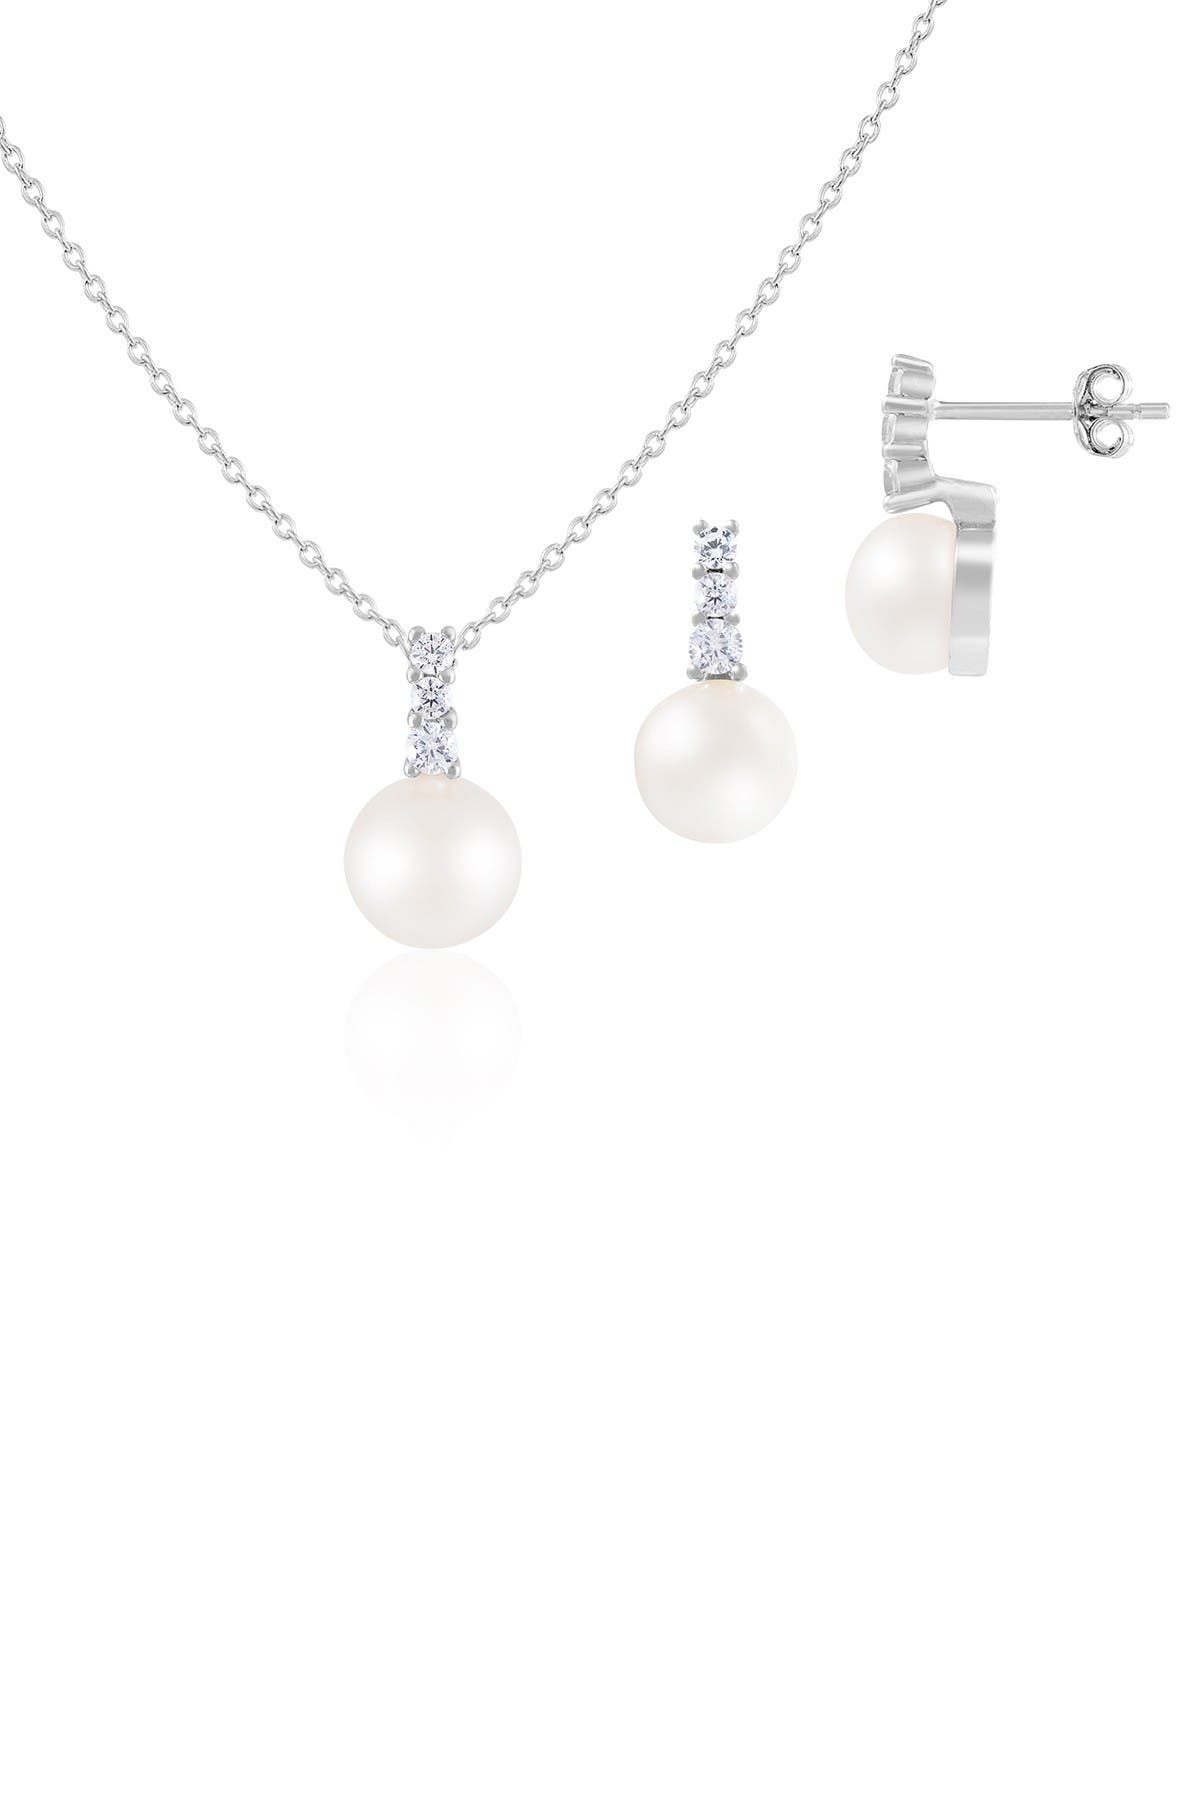 Image of Splendid Pearls White Freshwater Pearl Earrings & Necklace Set